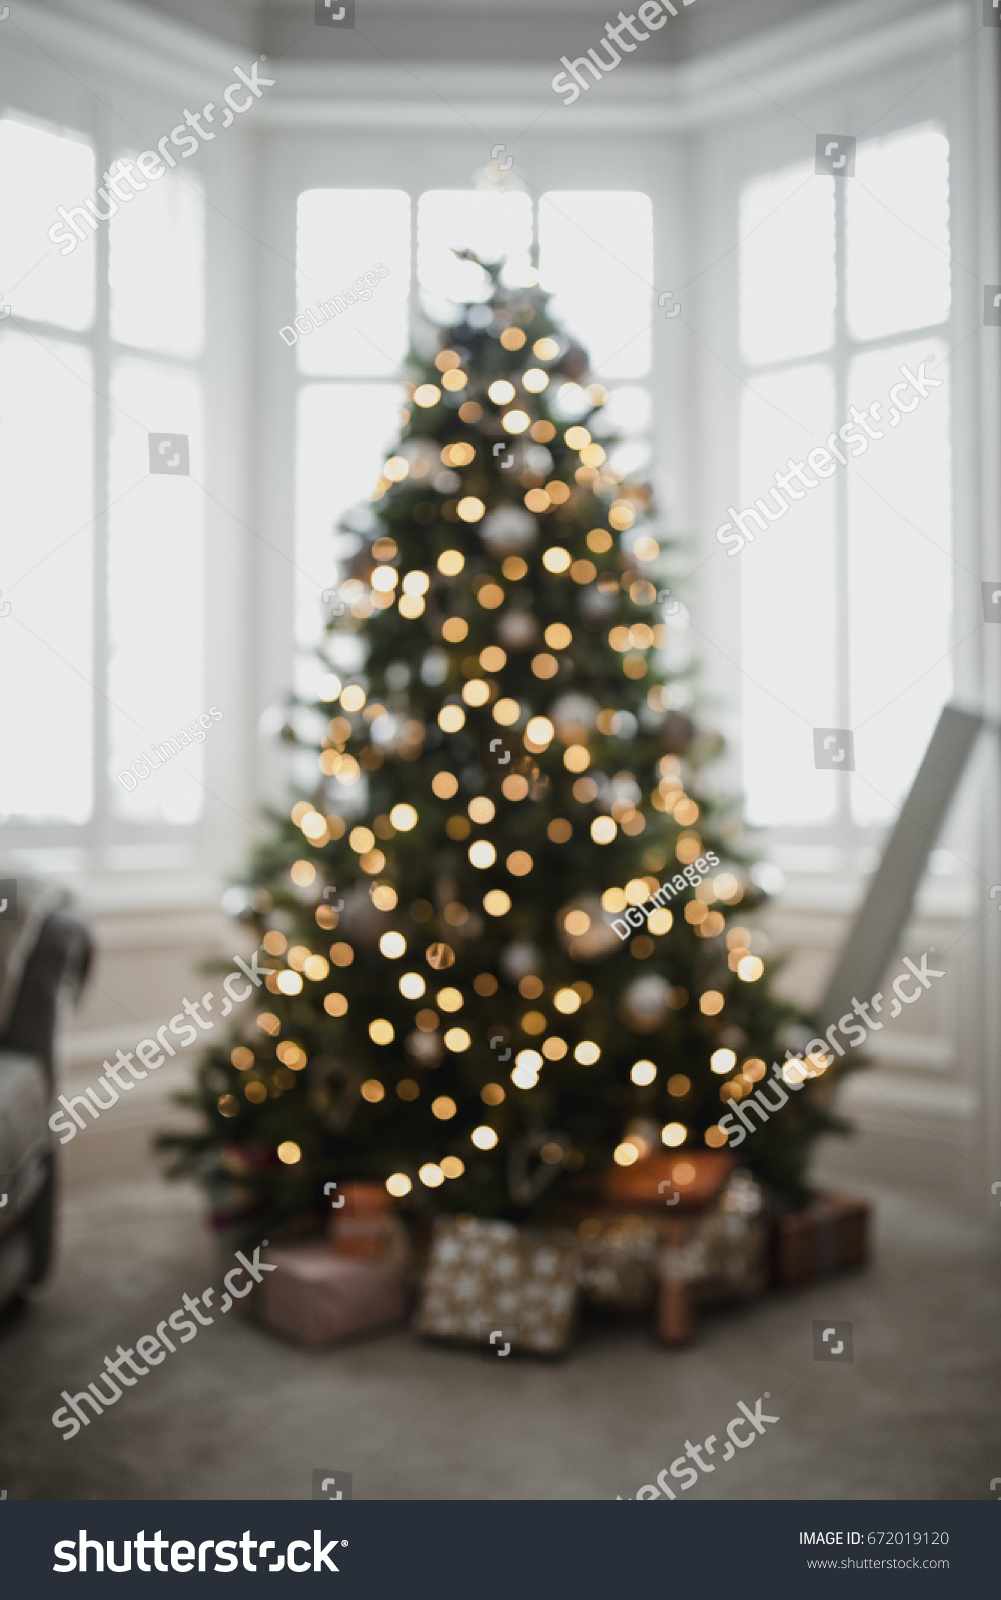 Defocused Christmas Tree In A Living Room With Presents Underneath It. Part 74